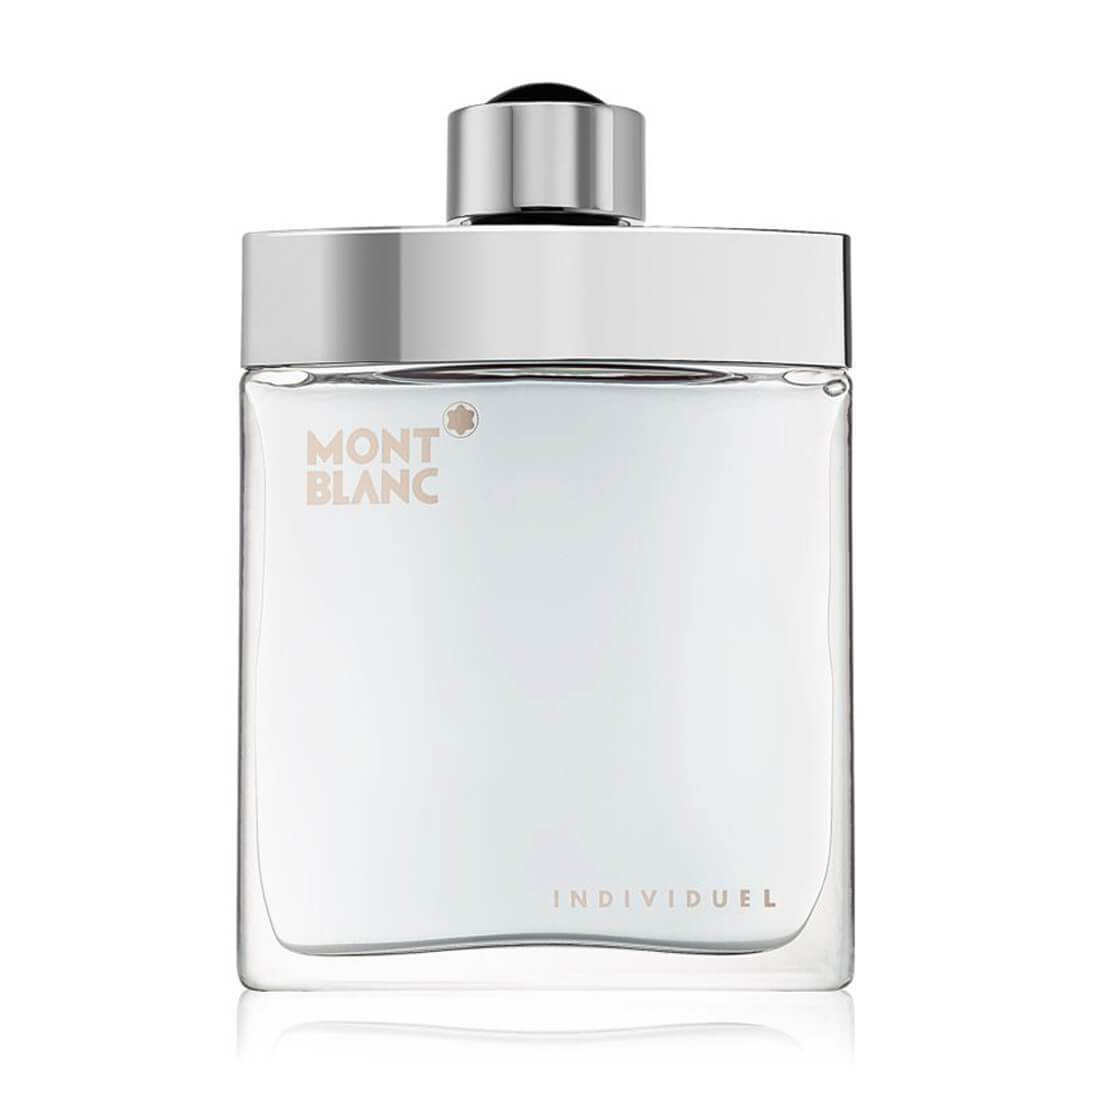 Mont Blanc Individuel Eau de Toilette For Men - 75ml